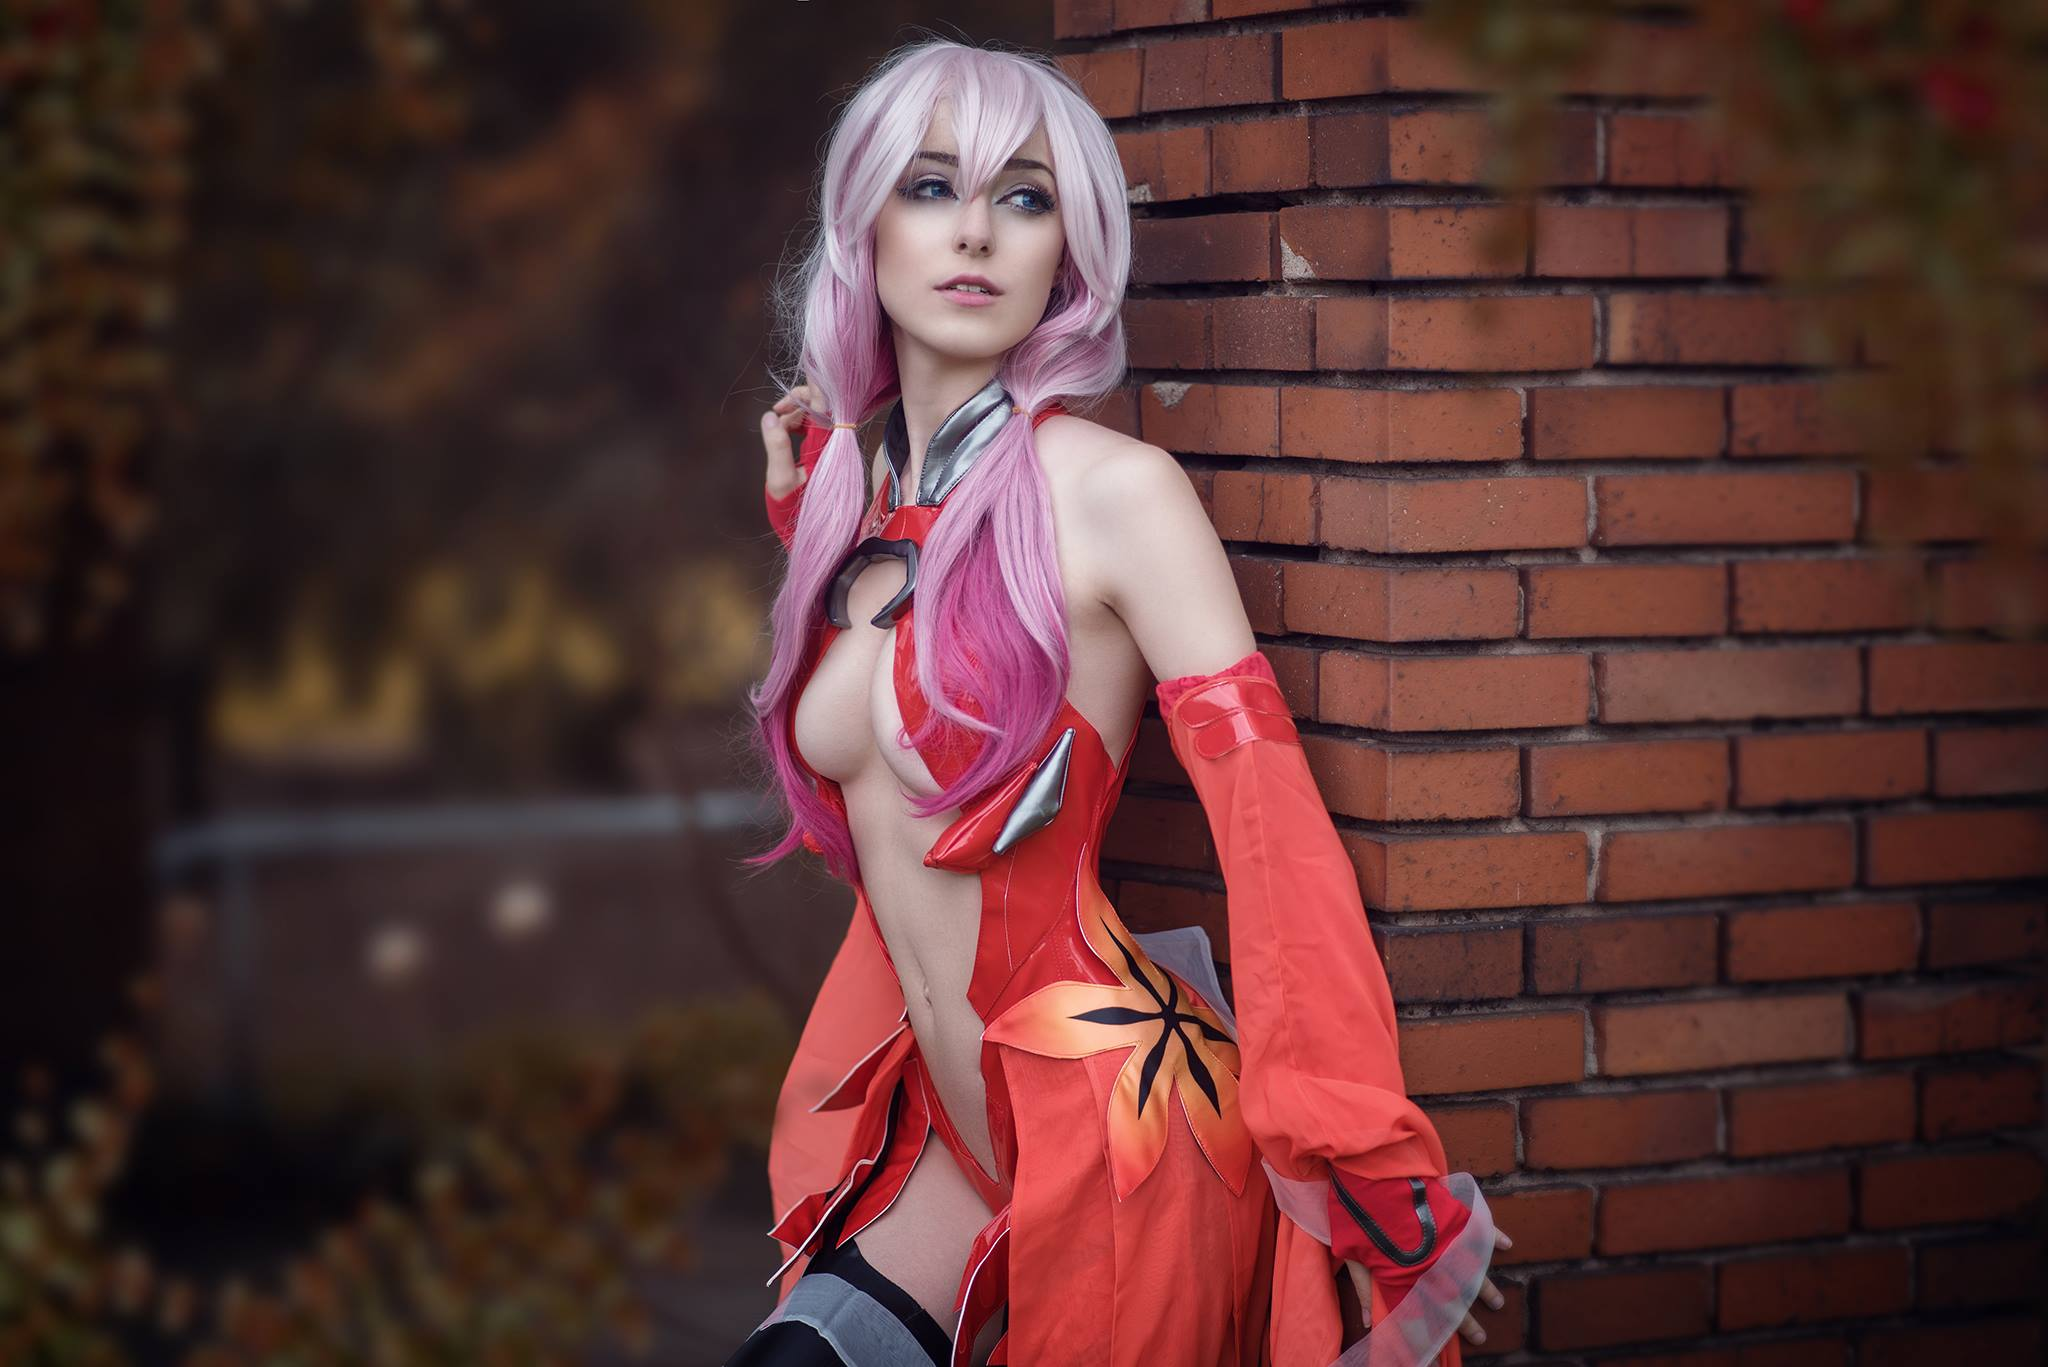 Anissa, cosplay, косплей, Inori Yuzuriha, Guilty Crown, девушка